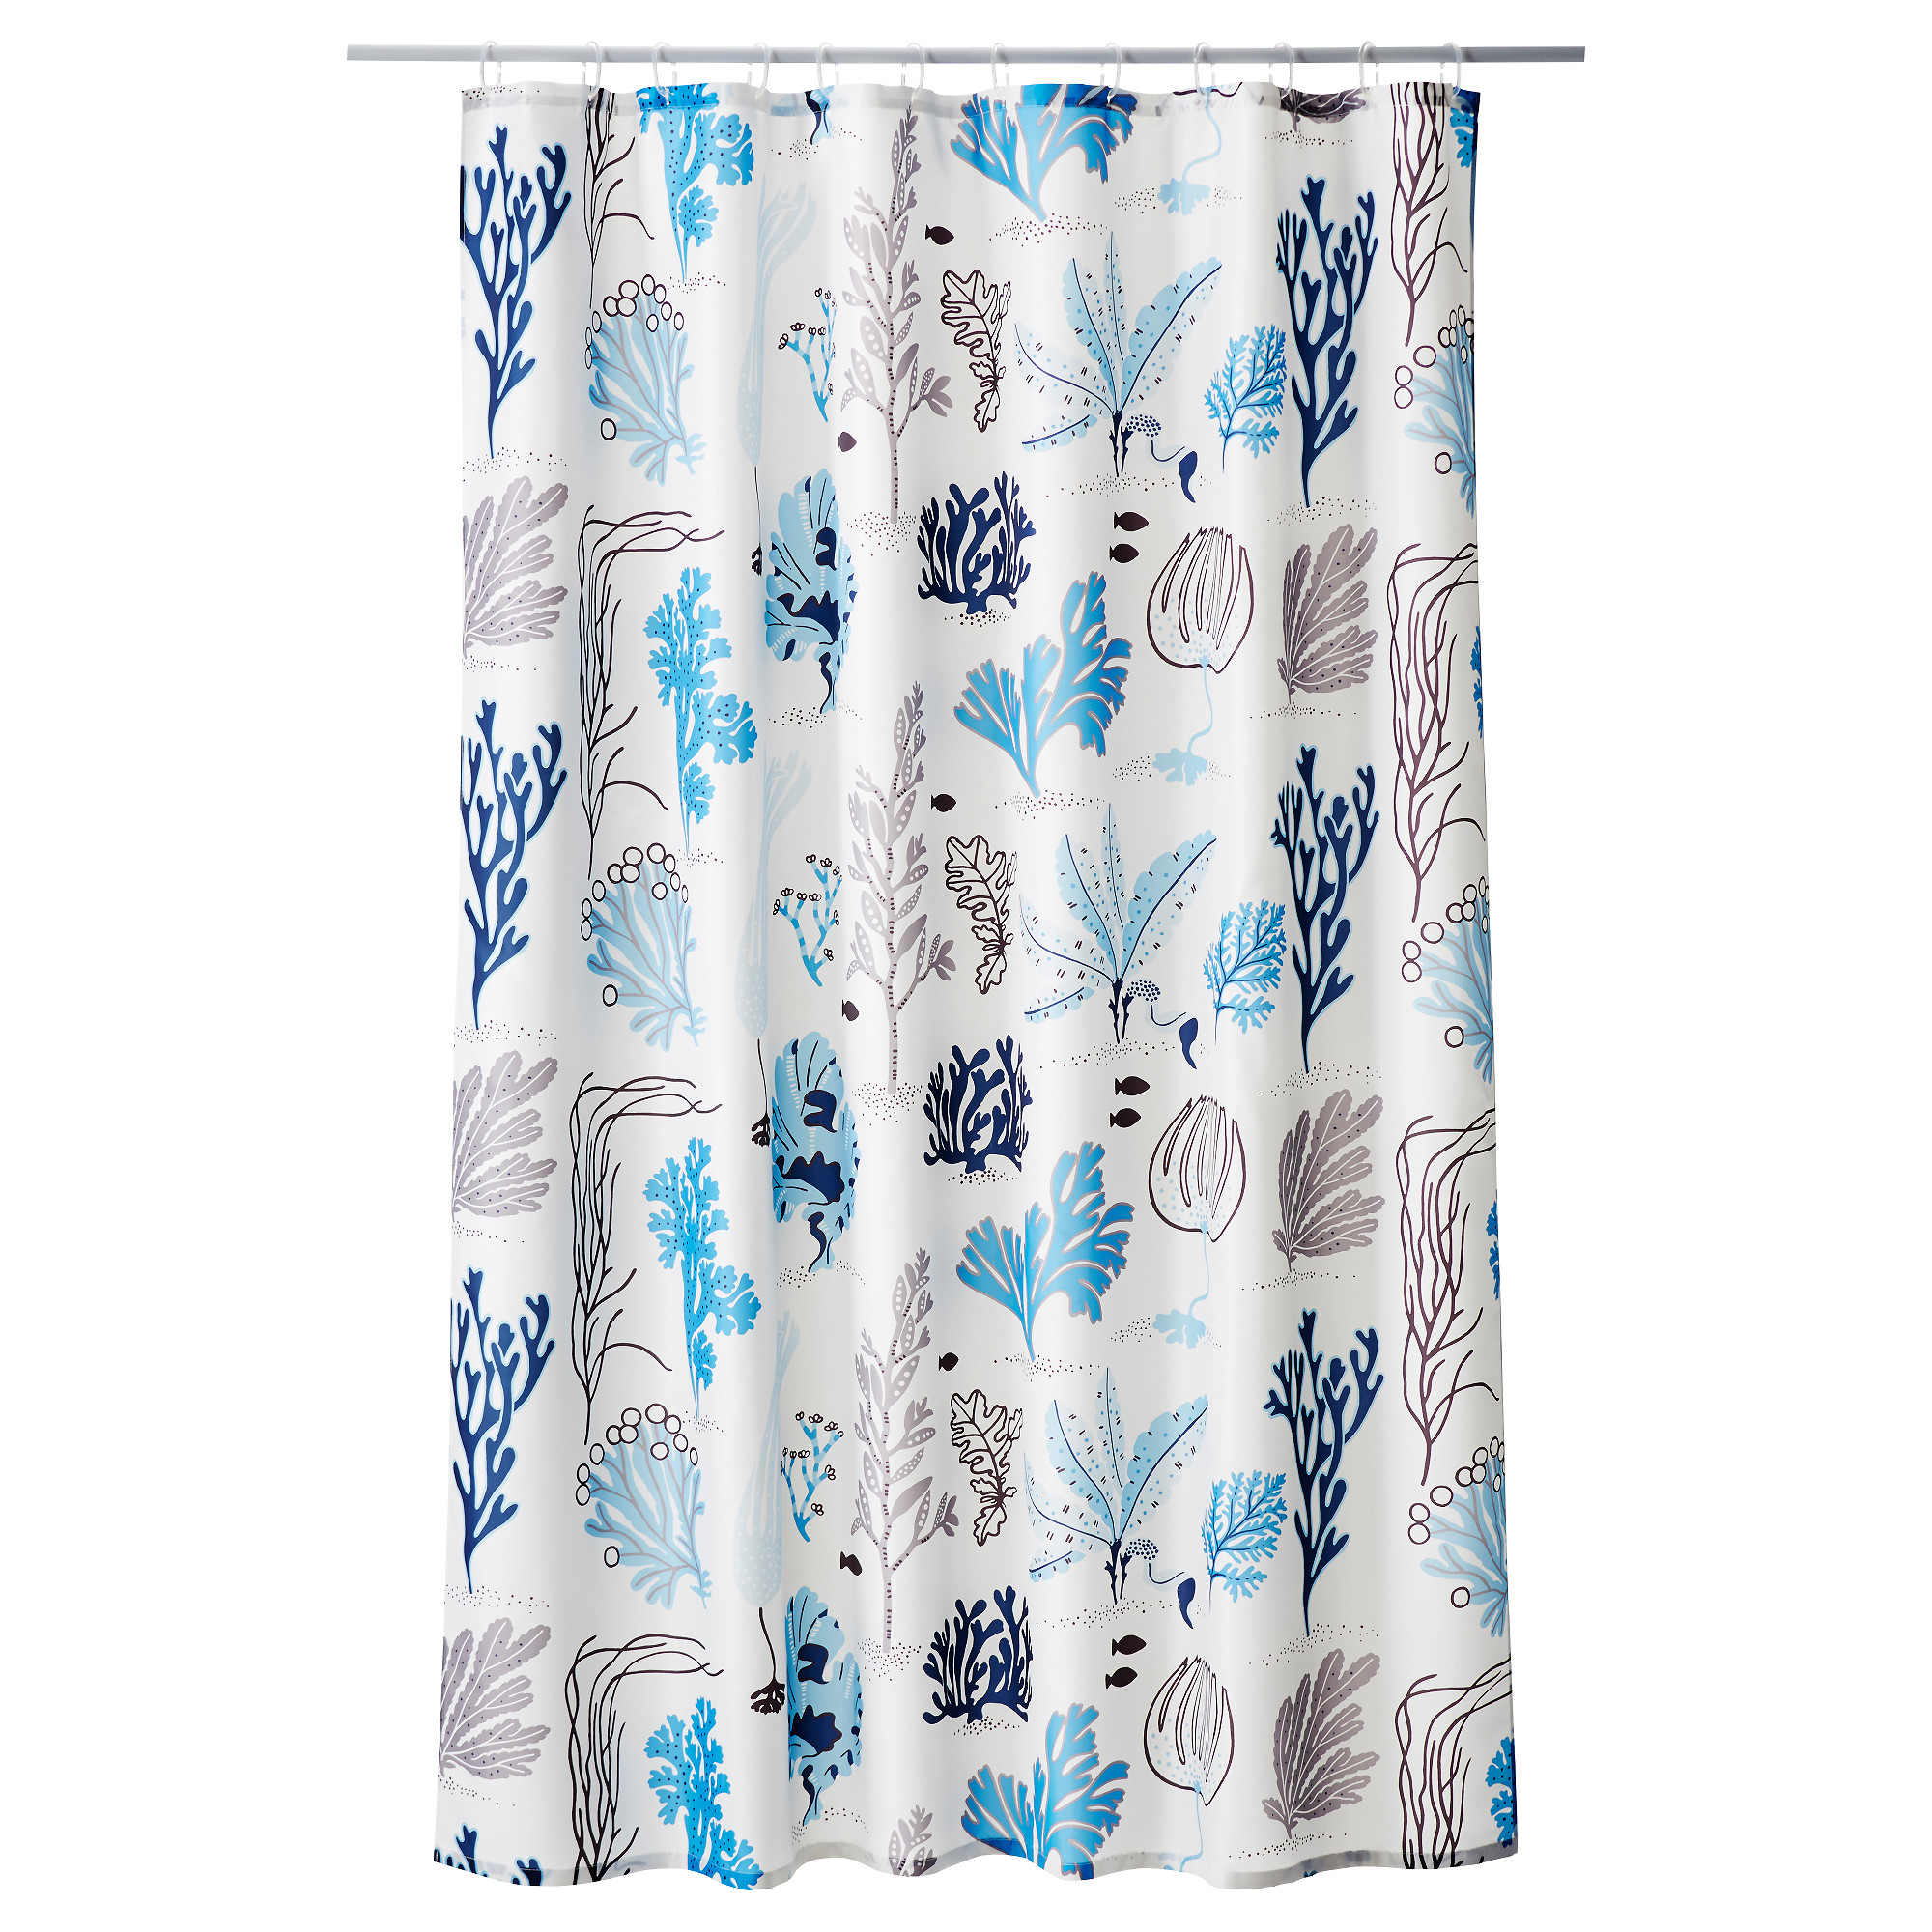 Ikea Shower Curtain for Best Your Bathroom Decoration: Shower Curtains Ikea | Standard Shower Curtain Length | Ikea Shower Curtain